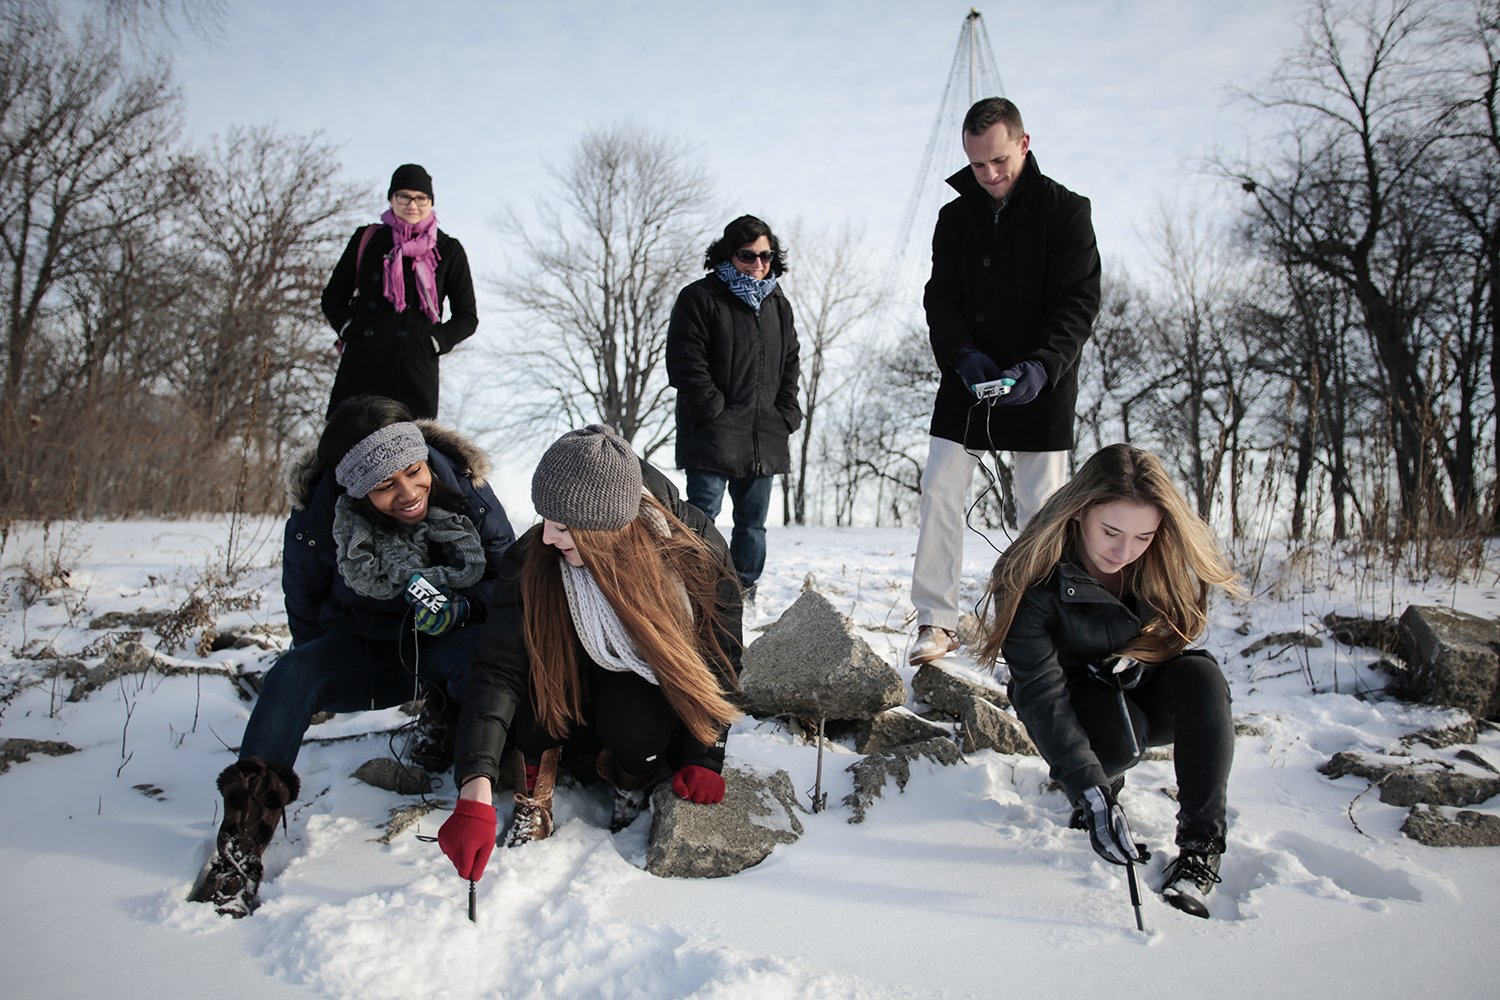 Janet Gocay, top left, from Pleasant Ridge, and Shernaz Minwalla, top center, from Macomb Township, watch as students Kayla Strong, bottom left, from Detroit, Renata Szymanski, bottom center, from Grosse Pointe Woods, Jake Smith, top right, from Warren and Jacqueline Kopicki, bottom right, from Grosse Pointe Woods gather data using electronic probes in Ford's Cove at the Edsel and Eleanor Ford House on Friday, Jan. 9, 2015 in Grosse Pointe Shores. Tim Galloway/Special to DFP